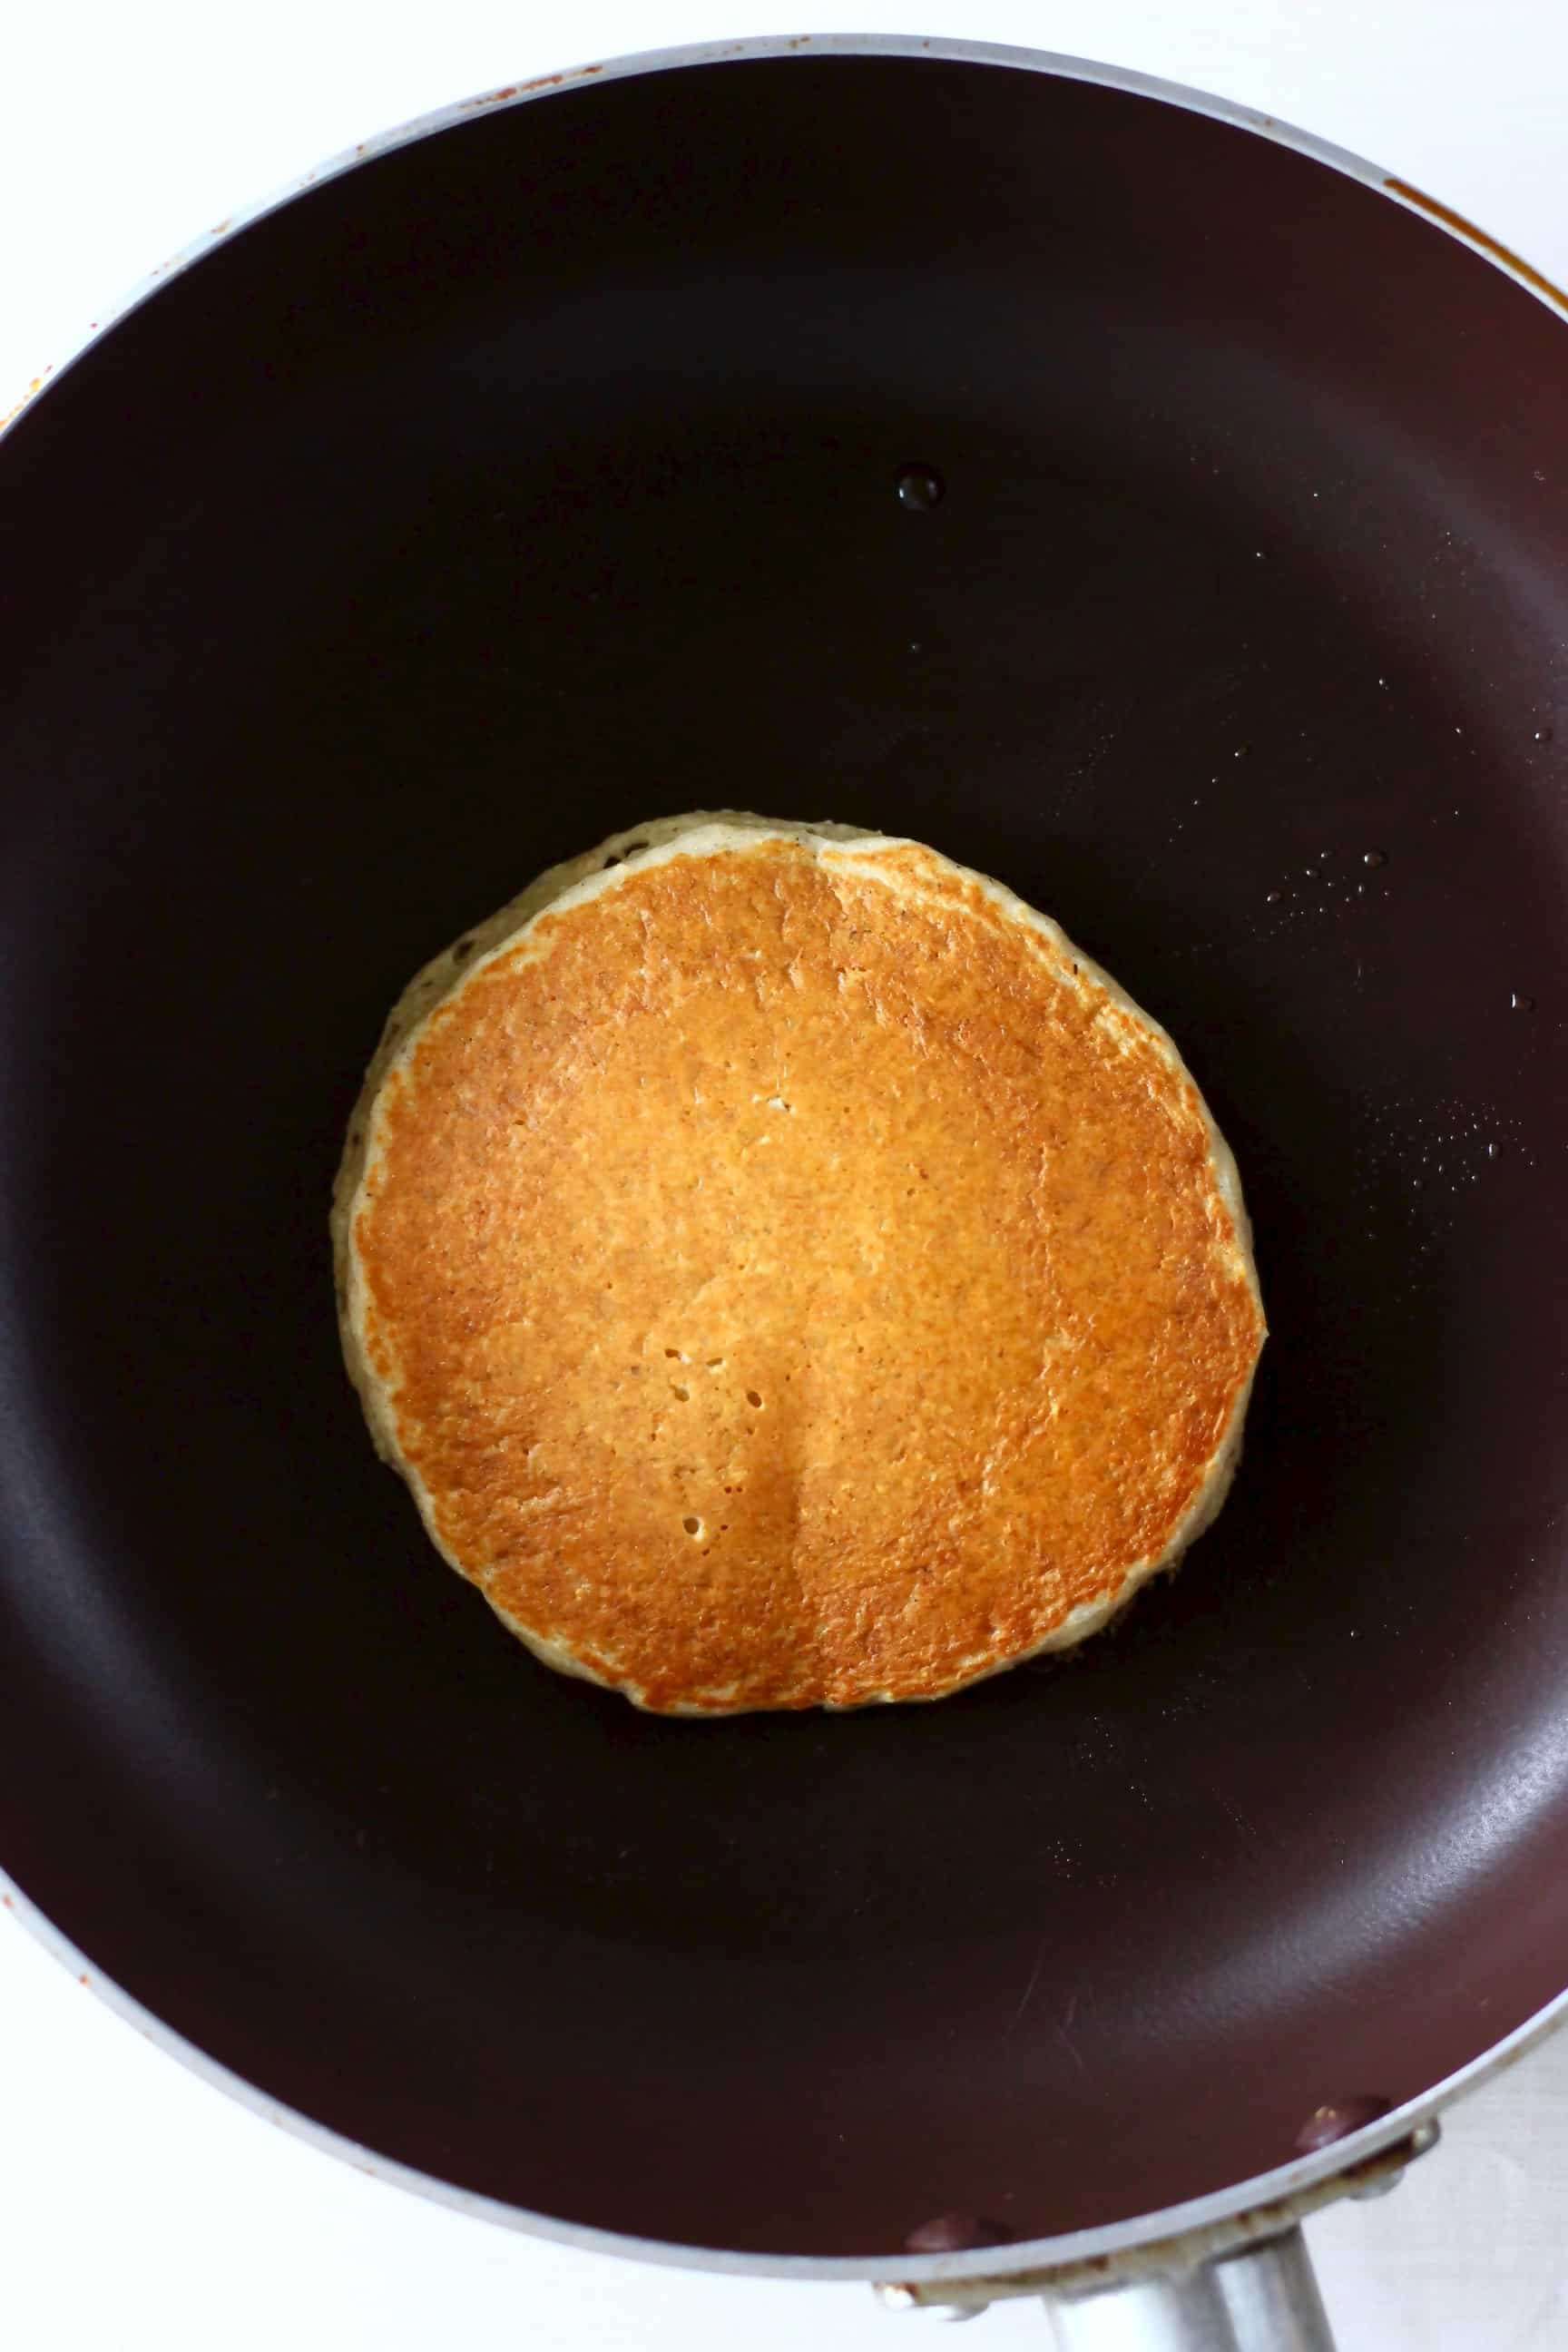 A golden brown oat flour pancake being cooked in a black frying pan against a marble background